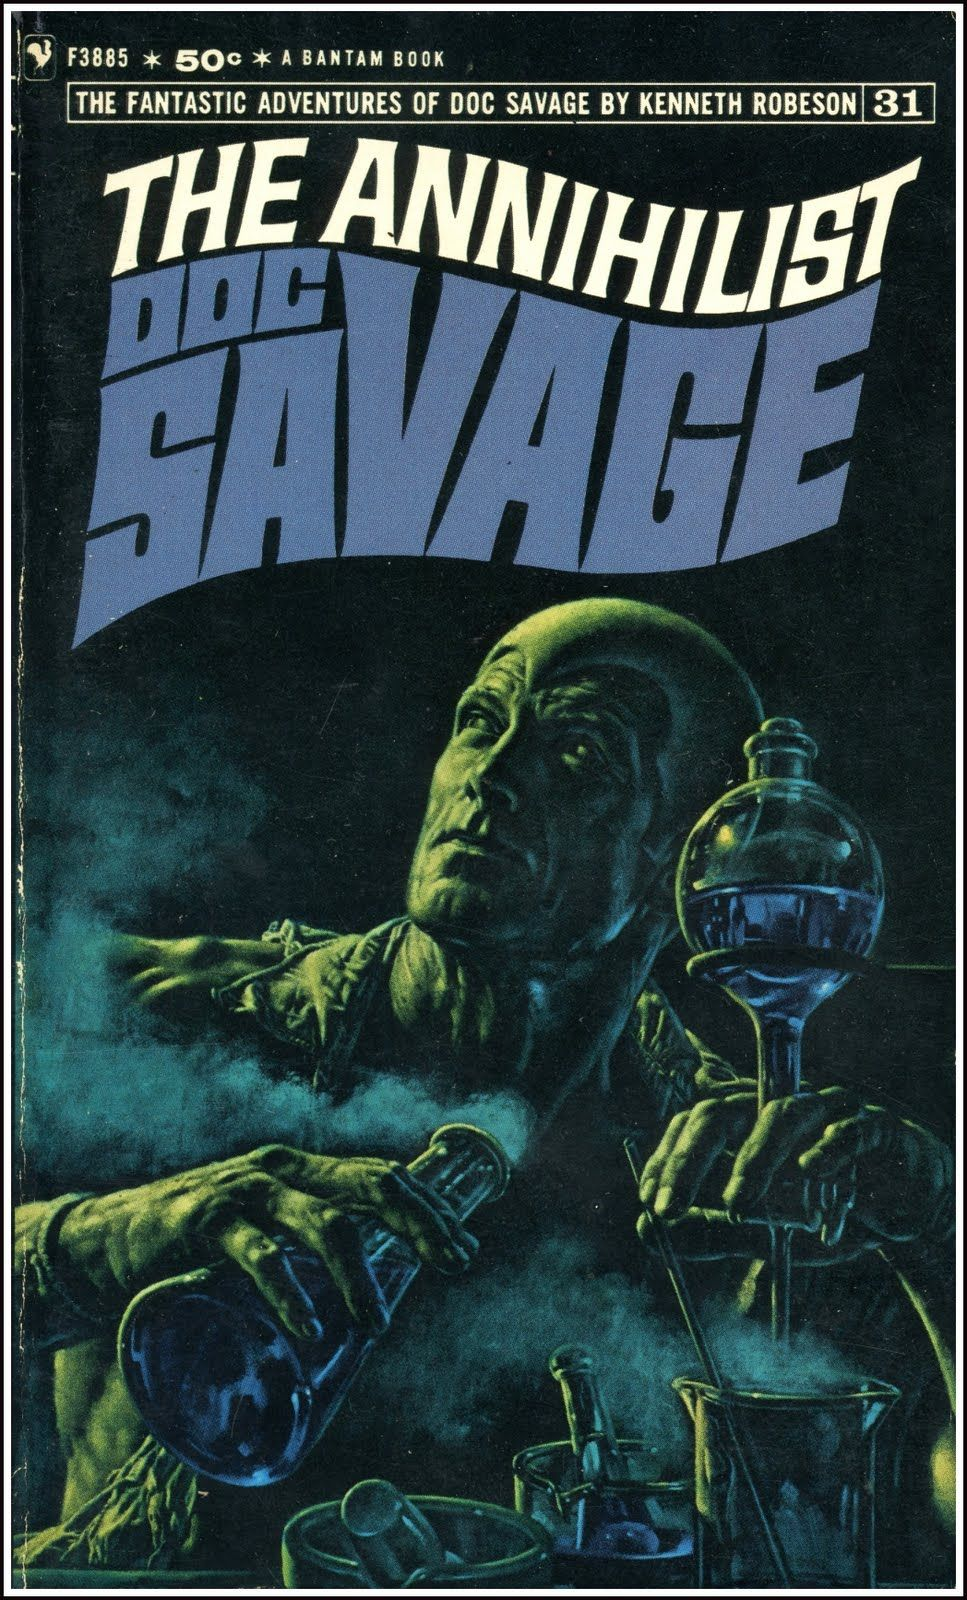 Doc savage 31 the annihilist doc savage pinterest savage doc savage 31 the annihilist fandeluxe Images